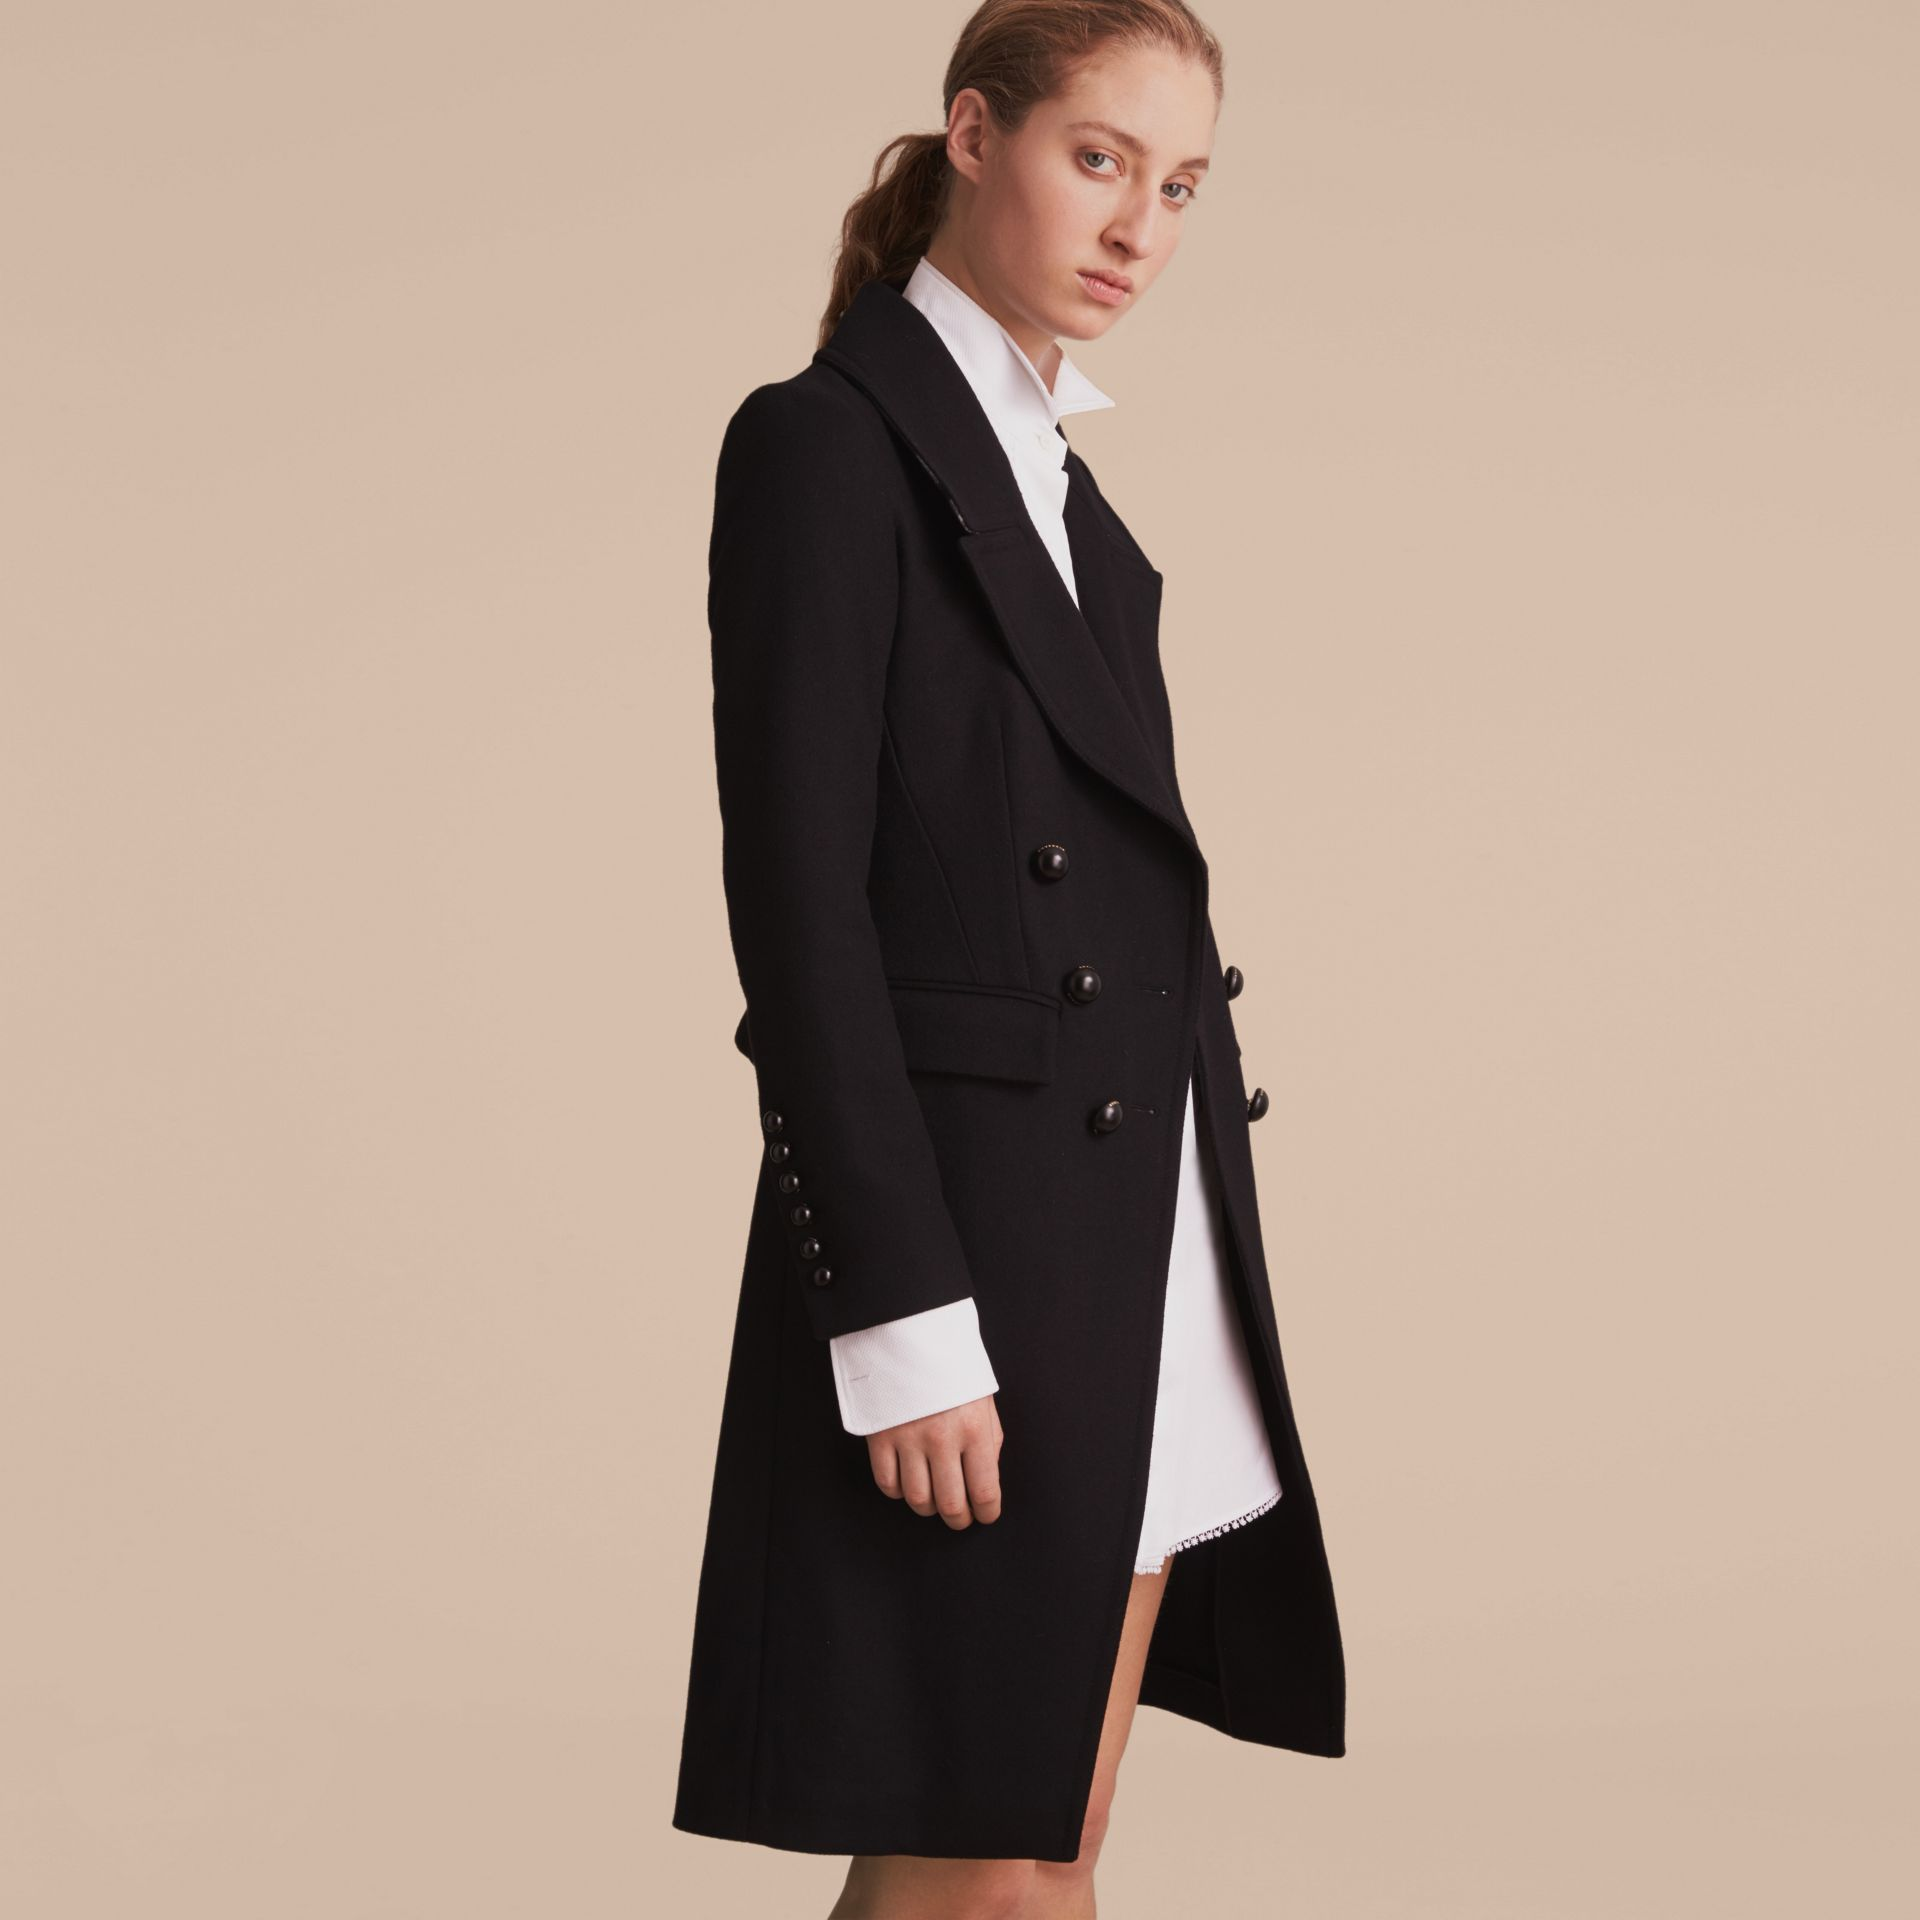 Wool Blend Double-breasted Coat in Black - Women | Burberry - gallery image 7